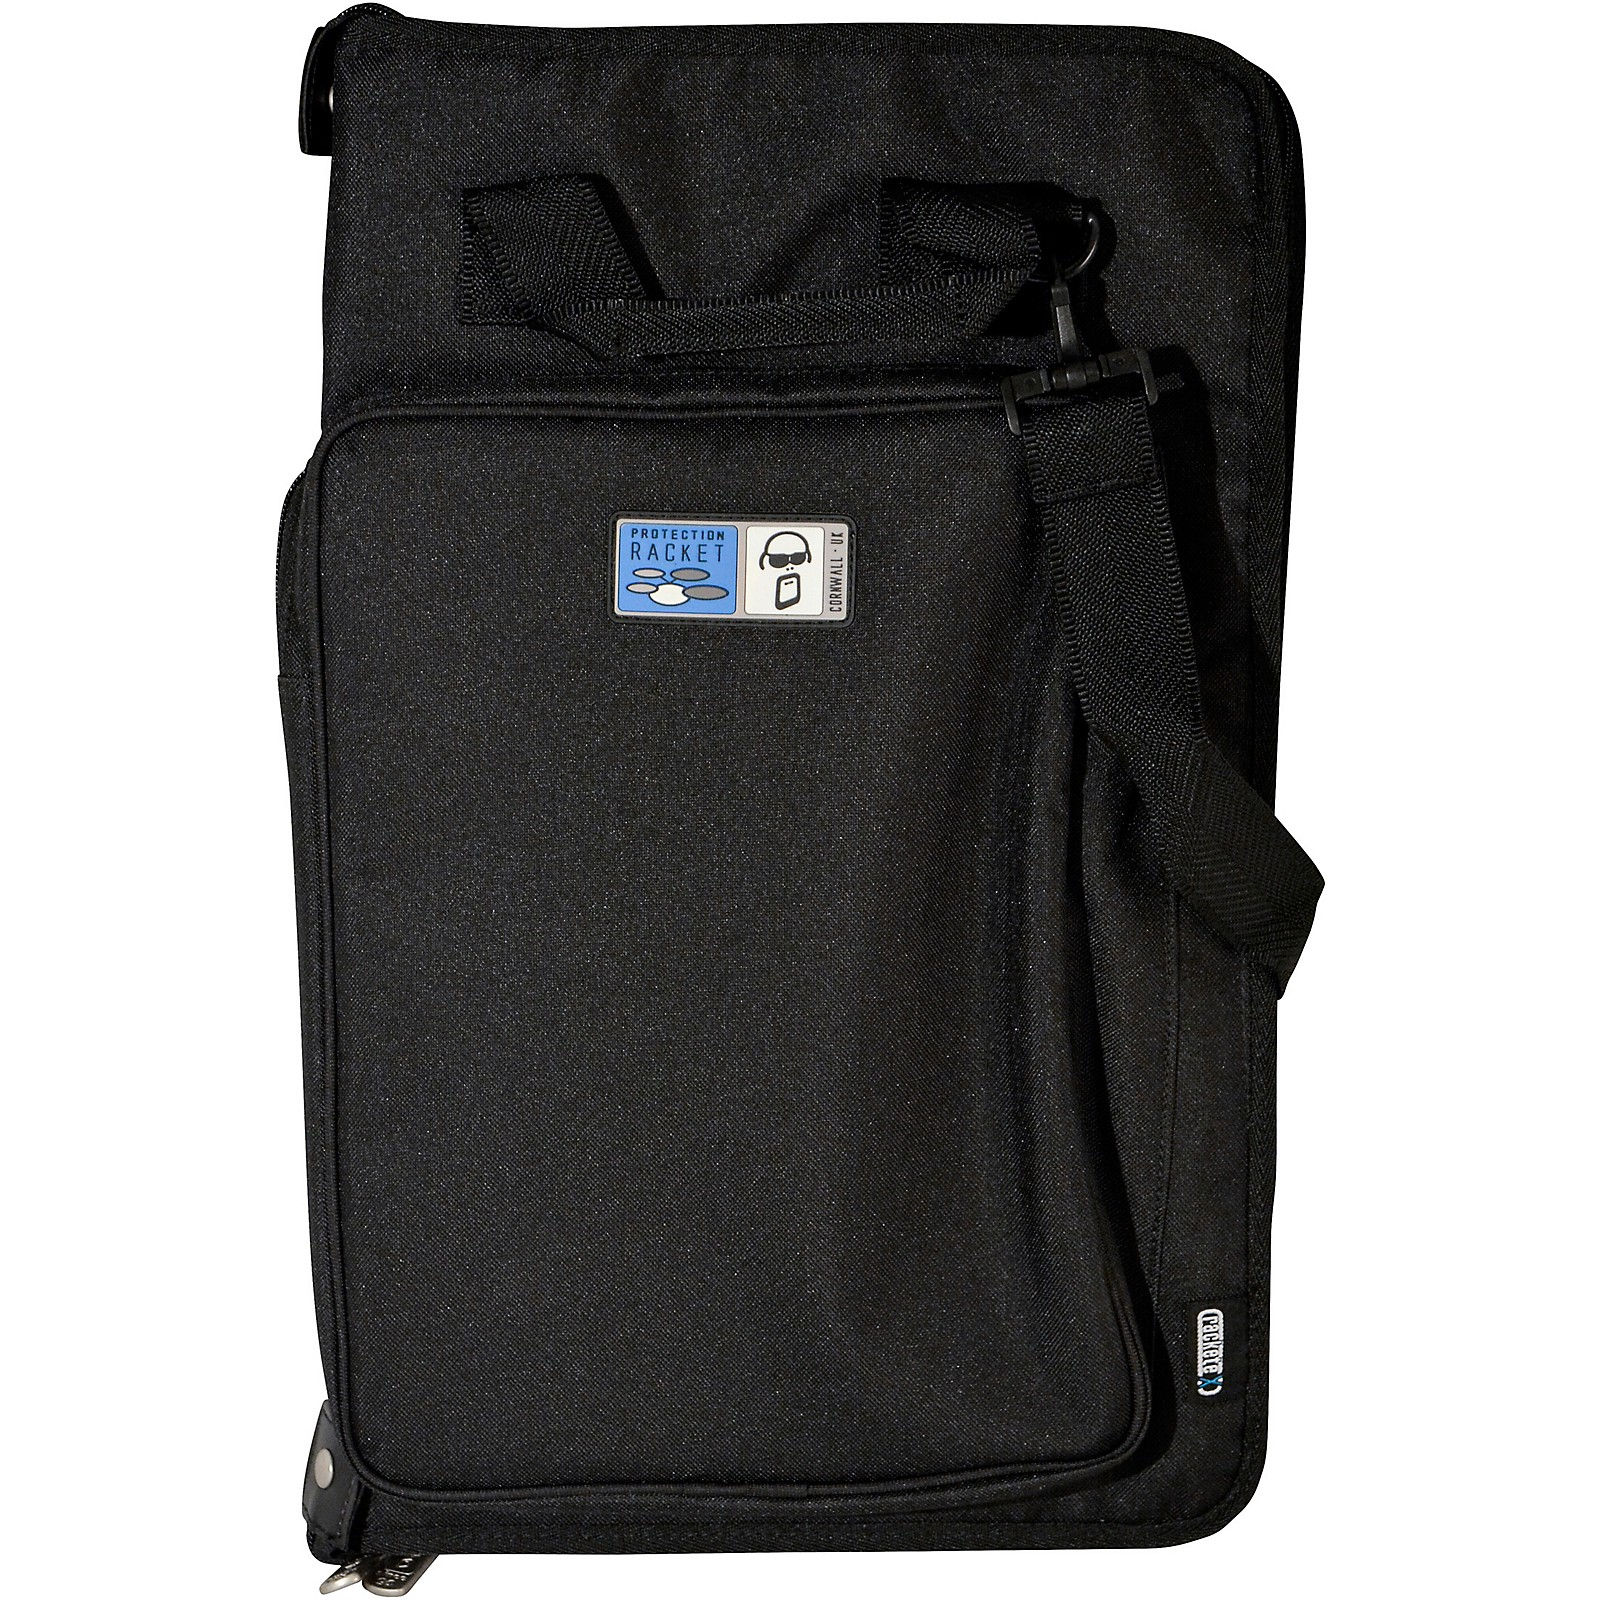 Protection Racket Supersize Deluxe Stick Case